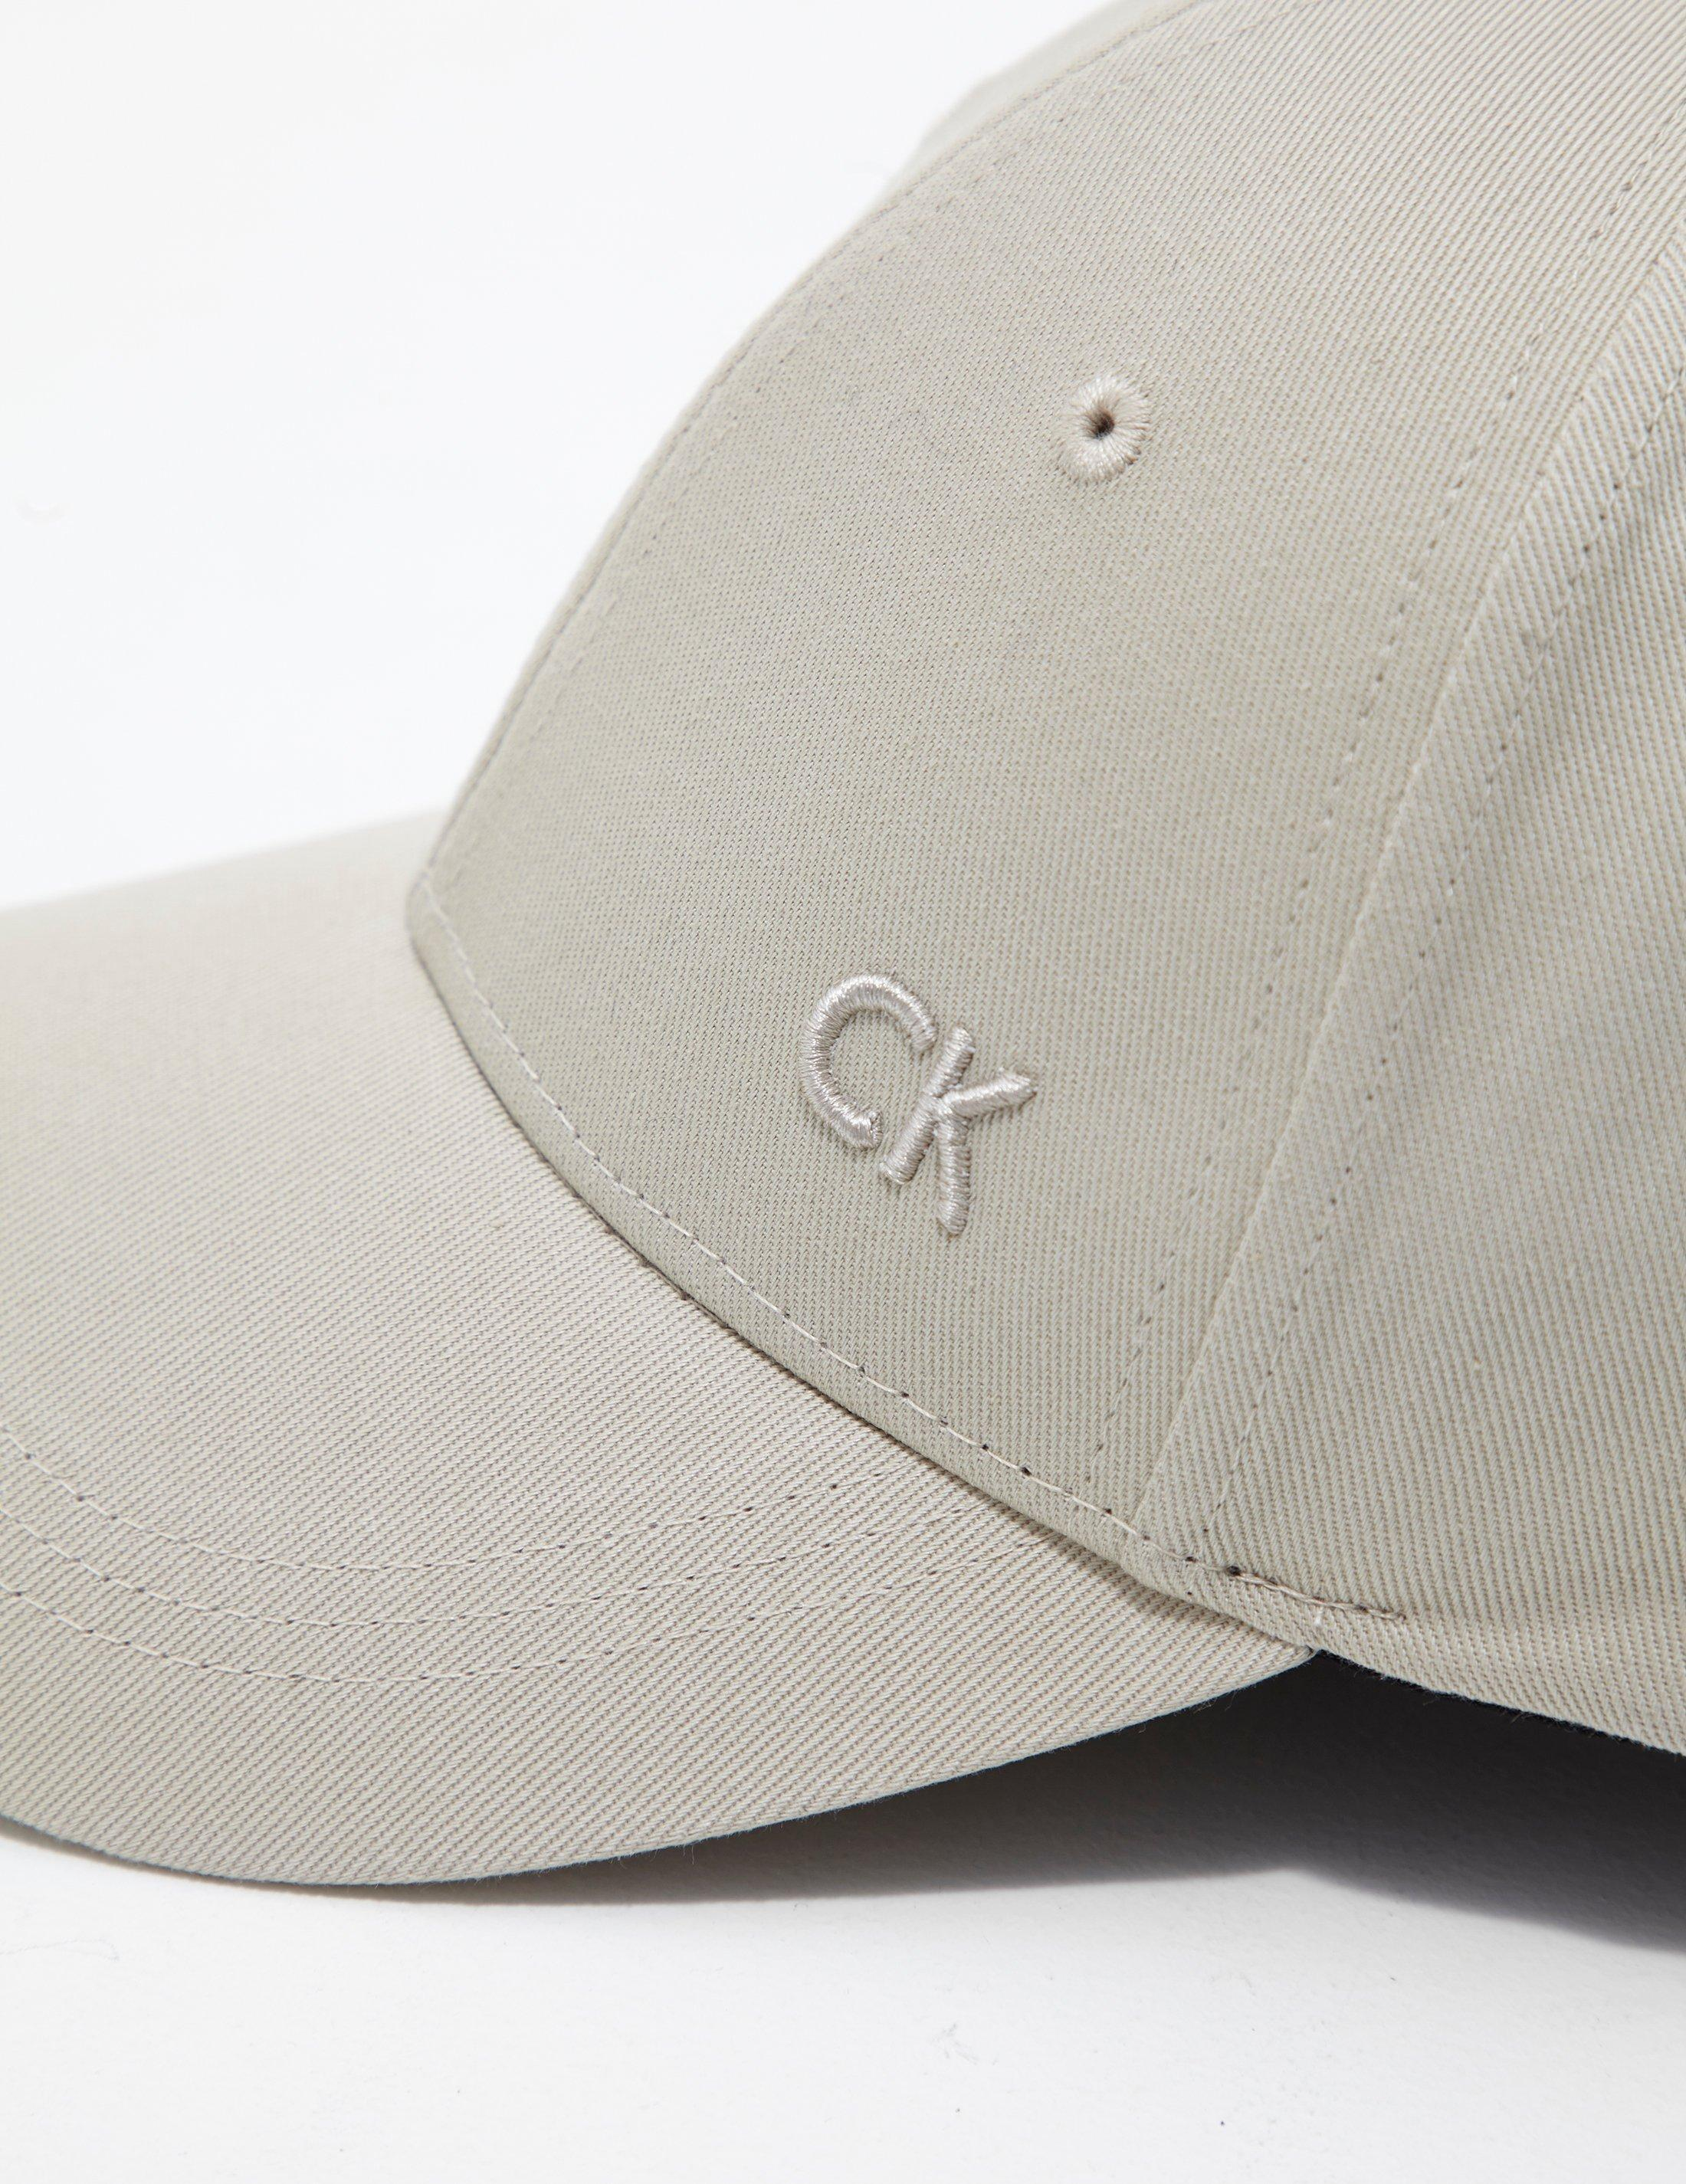 a81fd8fed8b Calvin Klein Mens Baseball Cap - Online Exclusive Cement cement for ...